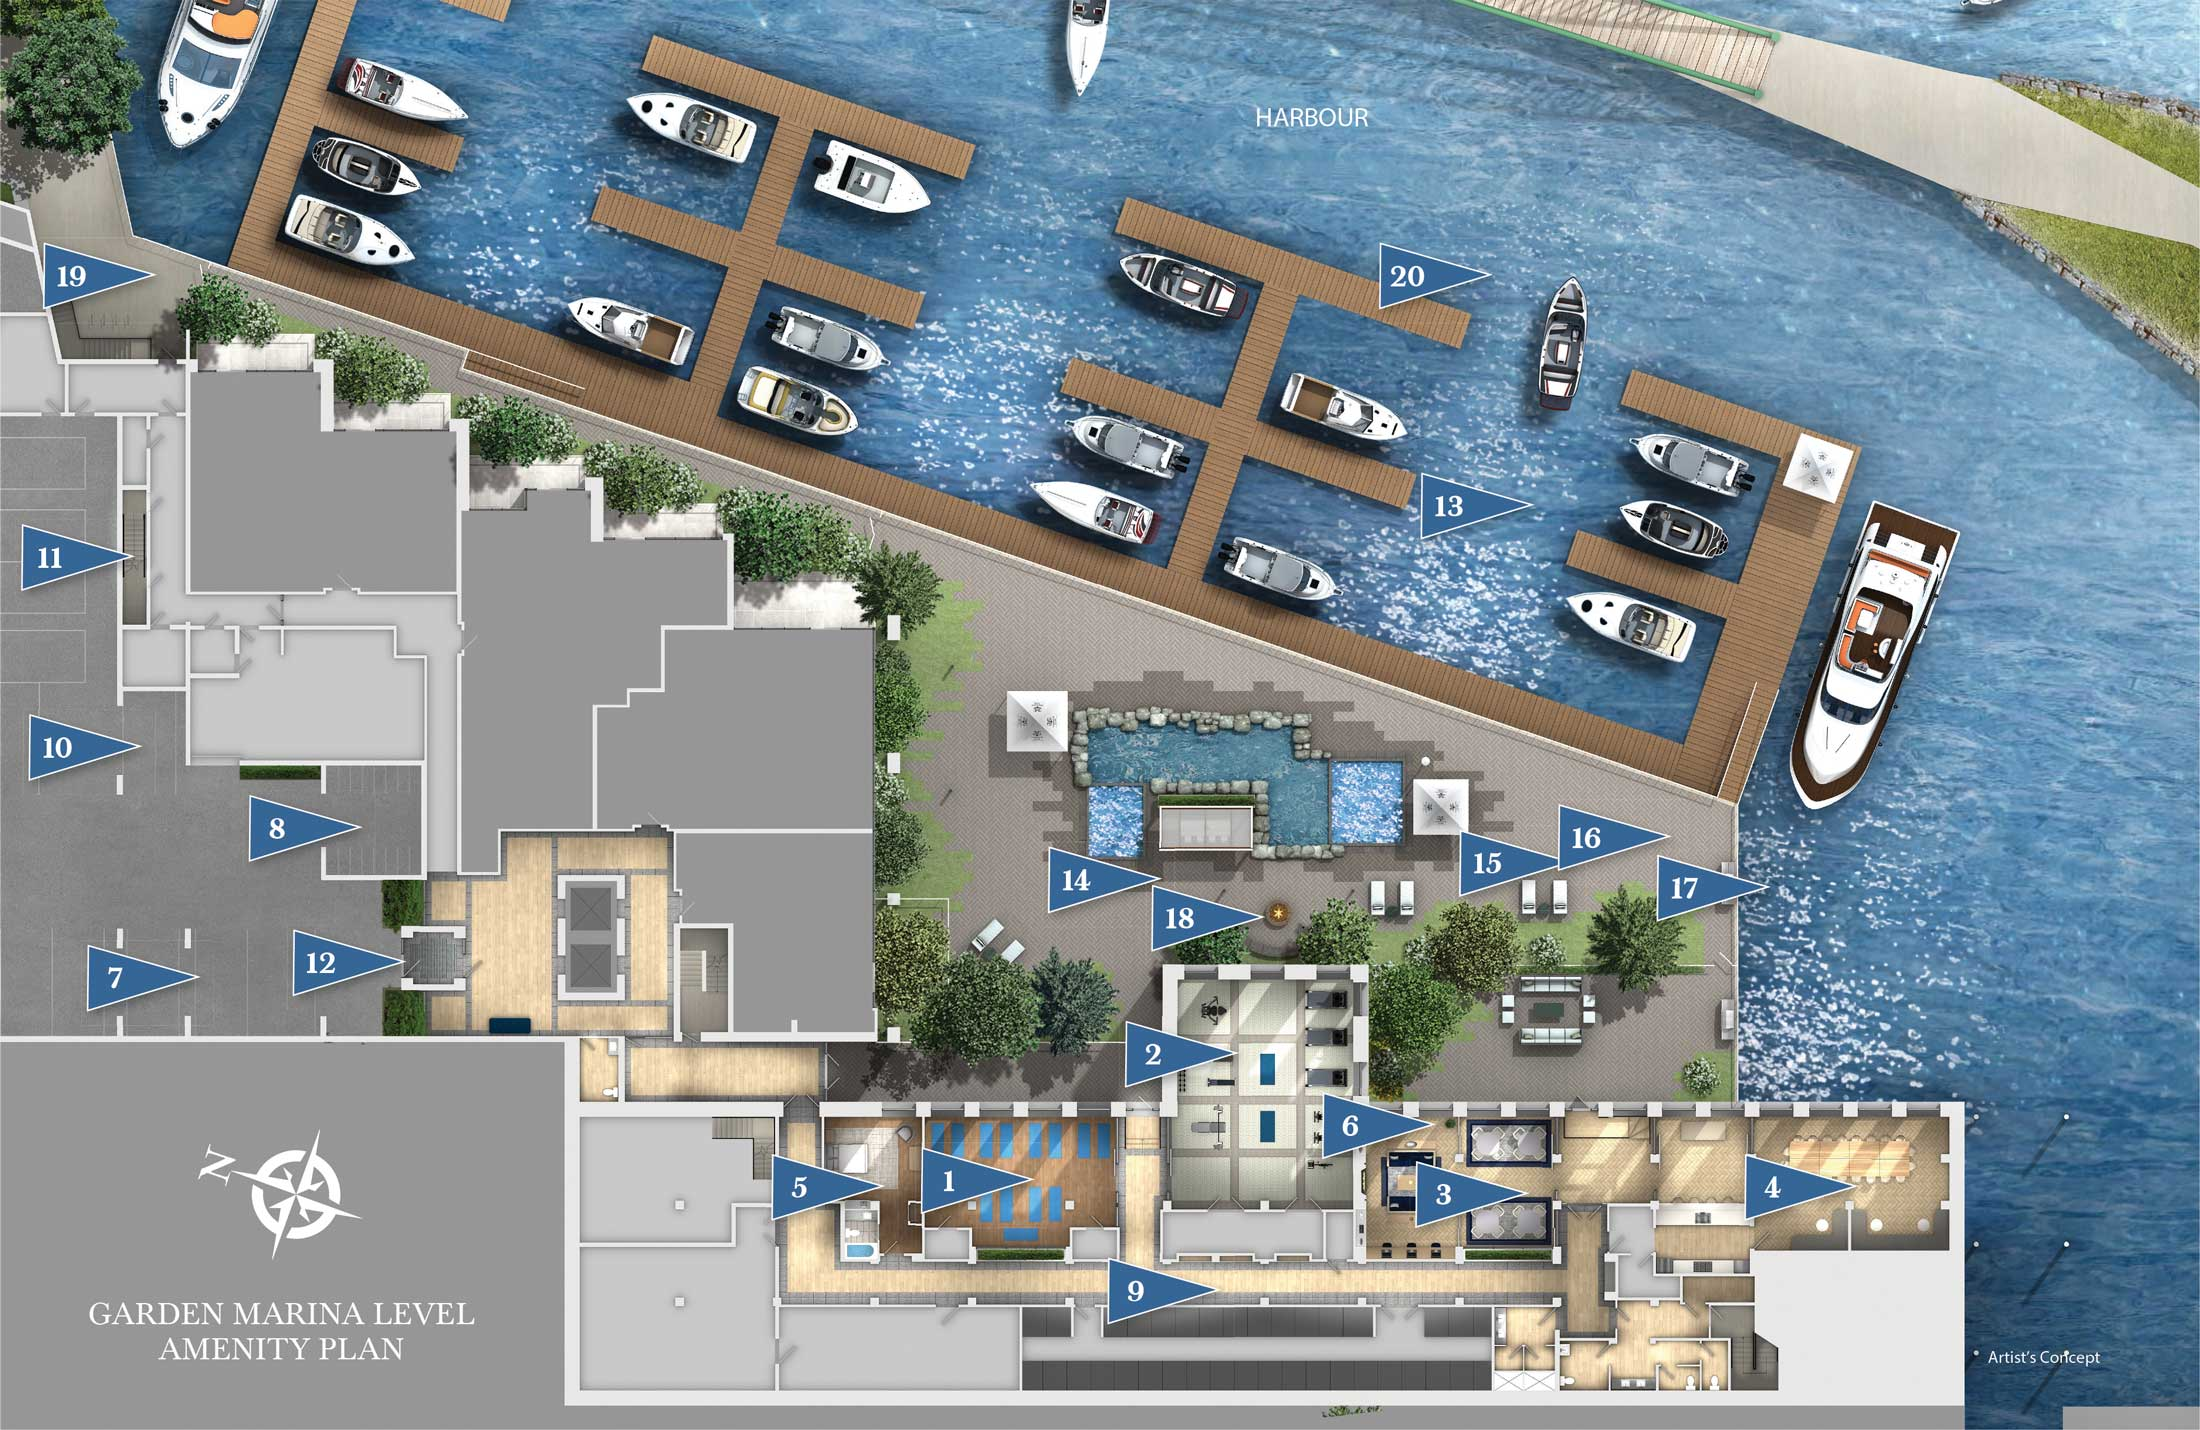 Garden Marina Level Amenities